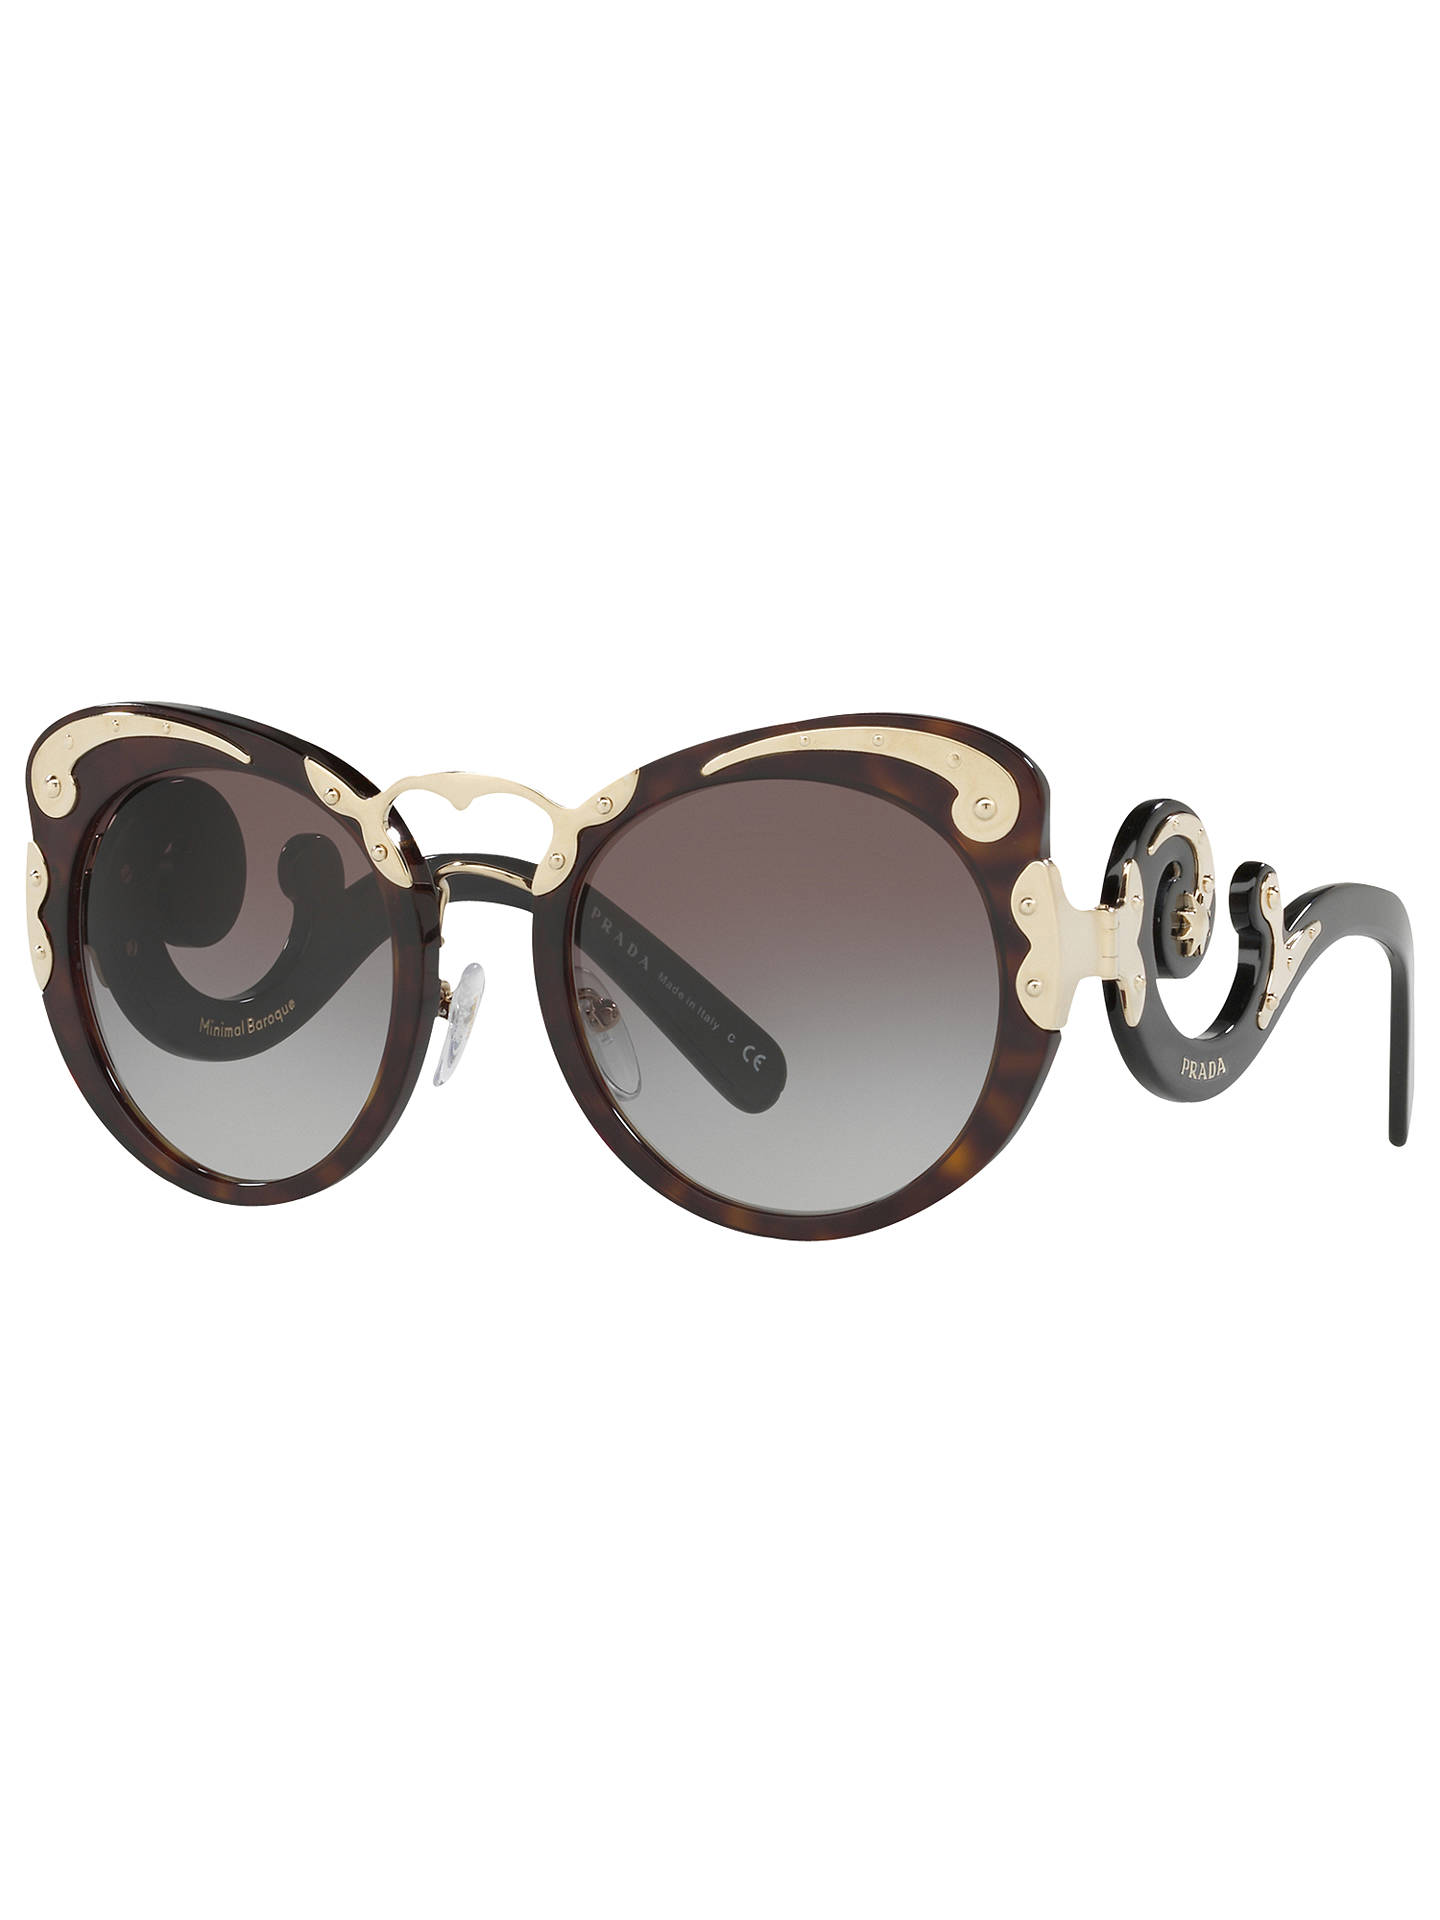 f163765f6f0c Buy Prada PR 07TS Structured Round Sunglasses, Tortoise/Grey Gradient  Online at johnlewis.